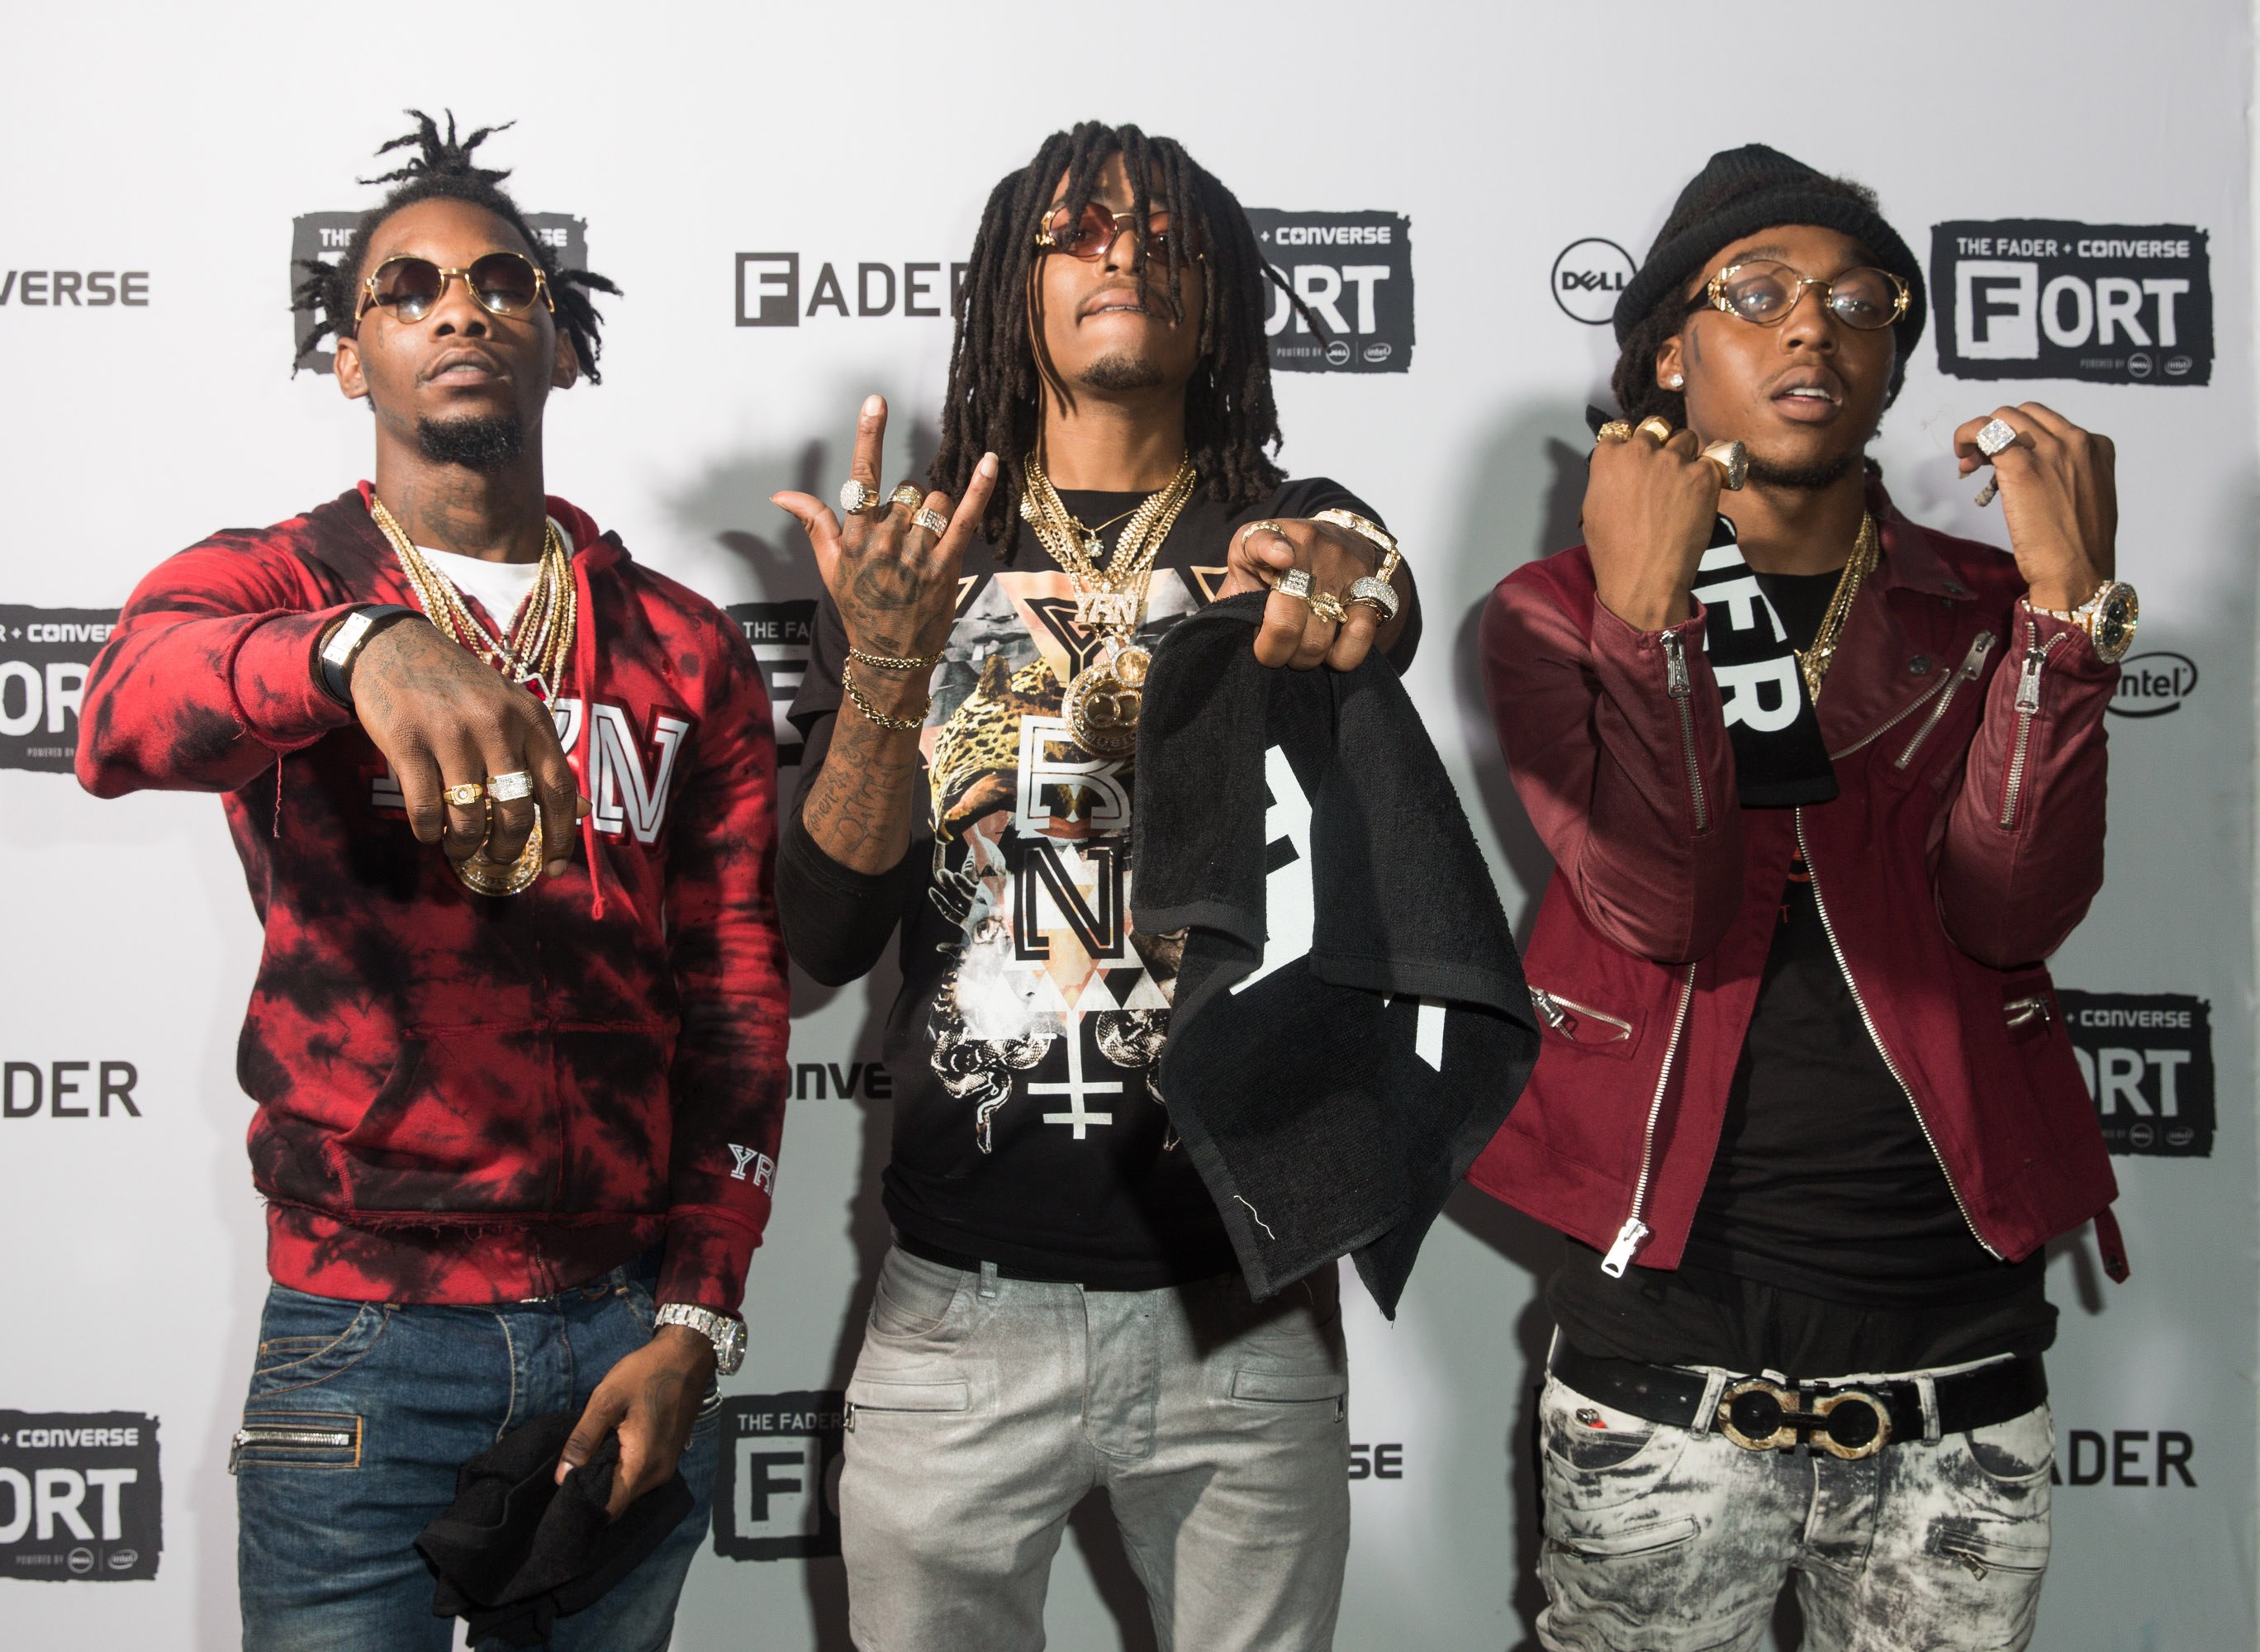 Migos Members Arrested On Guns Drugs Charges After Concert